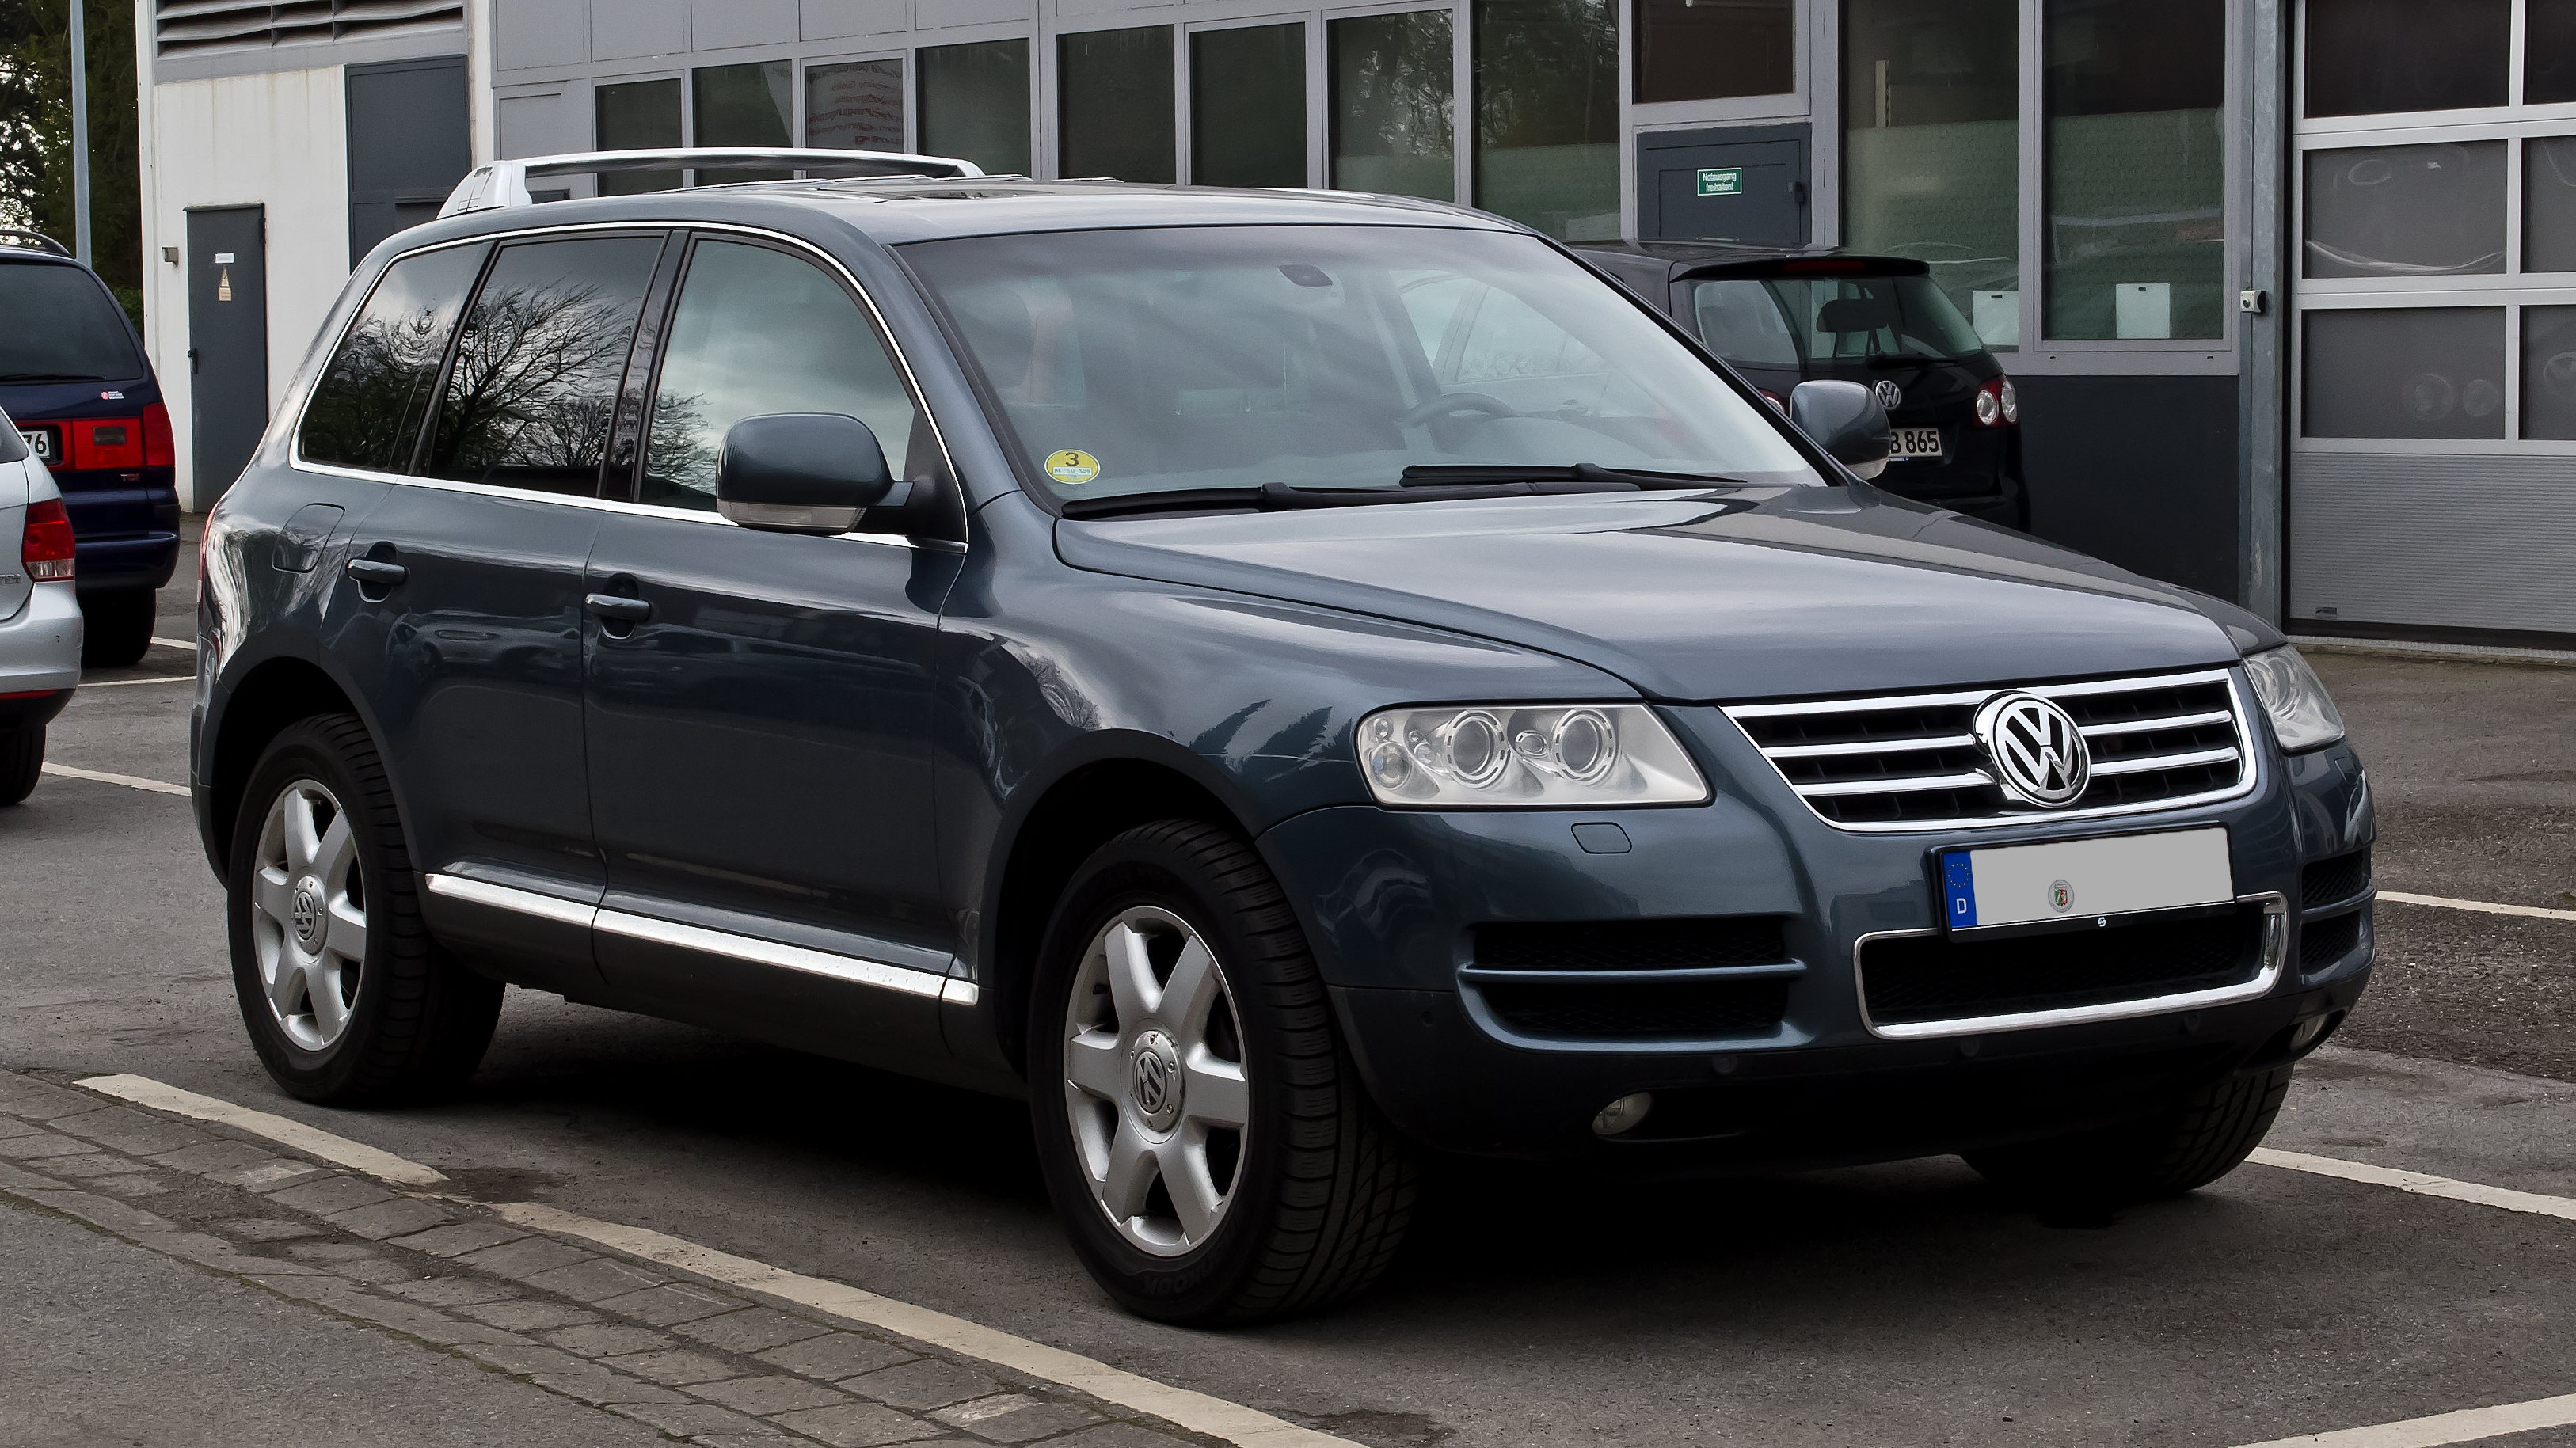 plik vw touareg v10 tdi i frontansicht 15 april 2012 wikipedia wolna. Black Bedroom Furniture Sets. Home Design Ideas